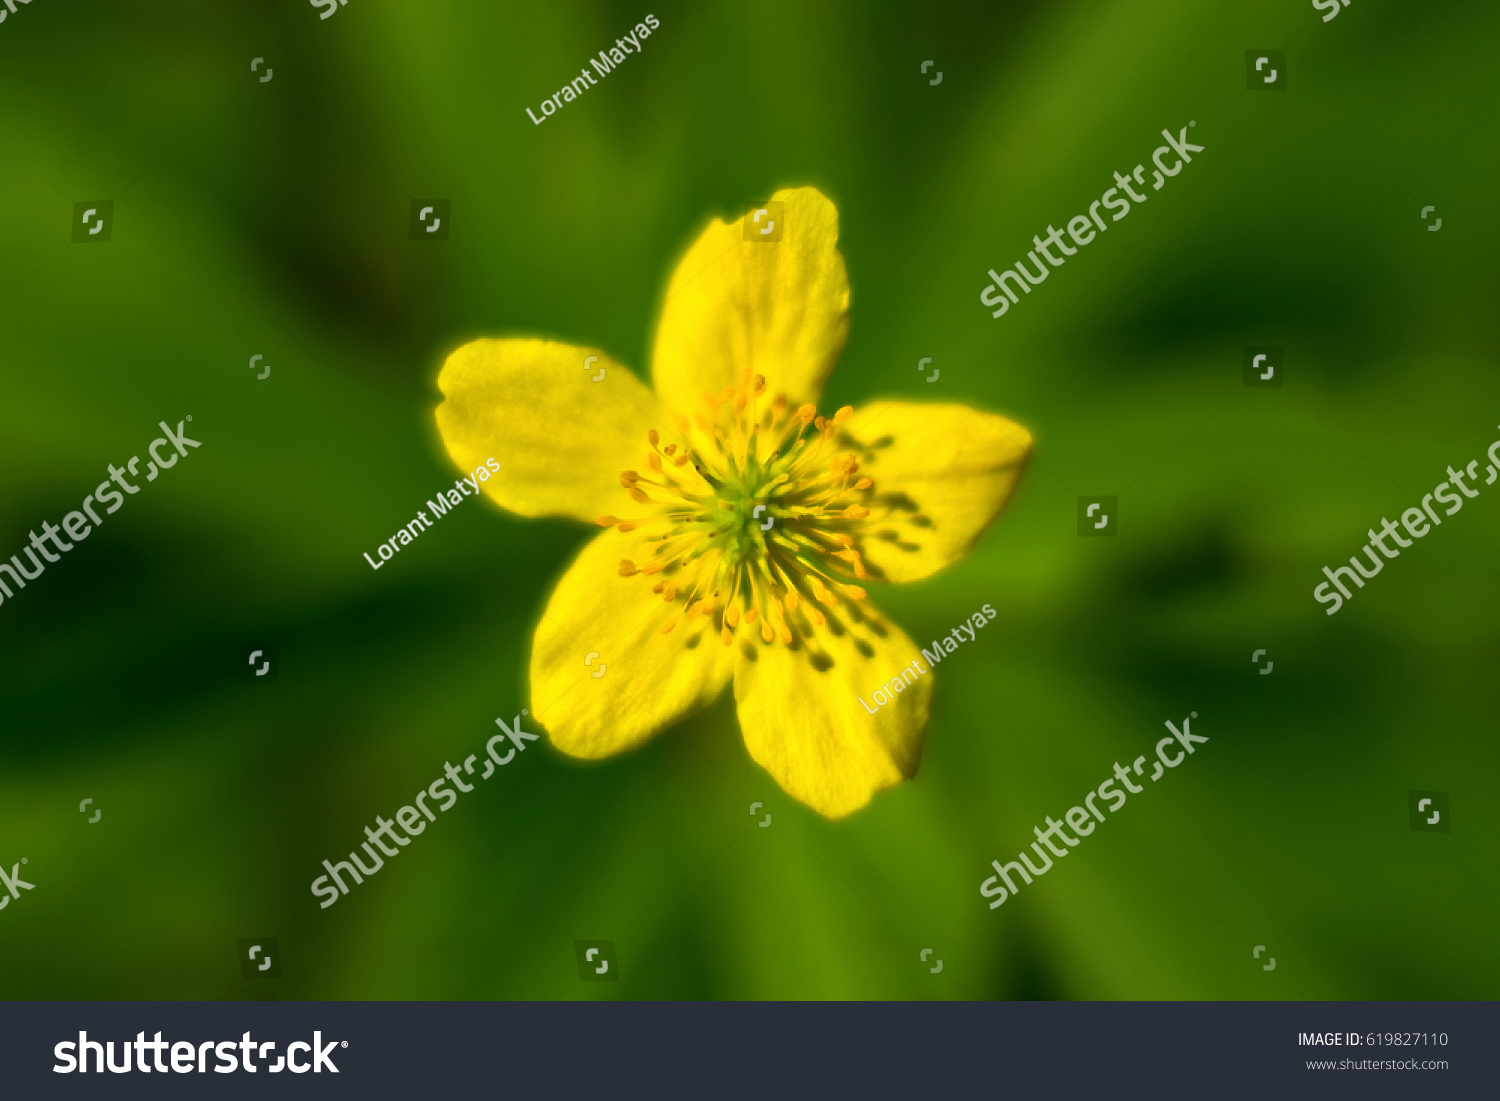 Yellow Flower In The Center Wild Yellow Flower Blooming Soft